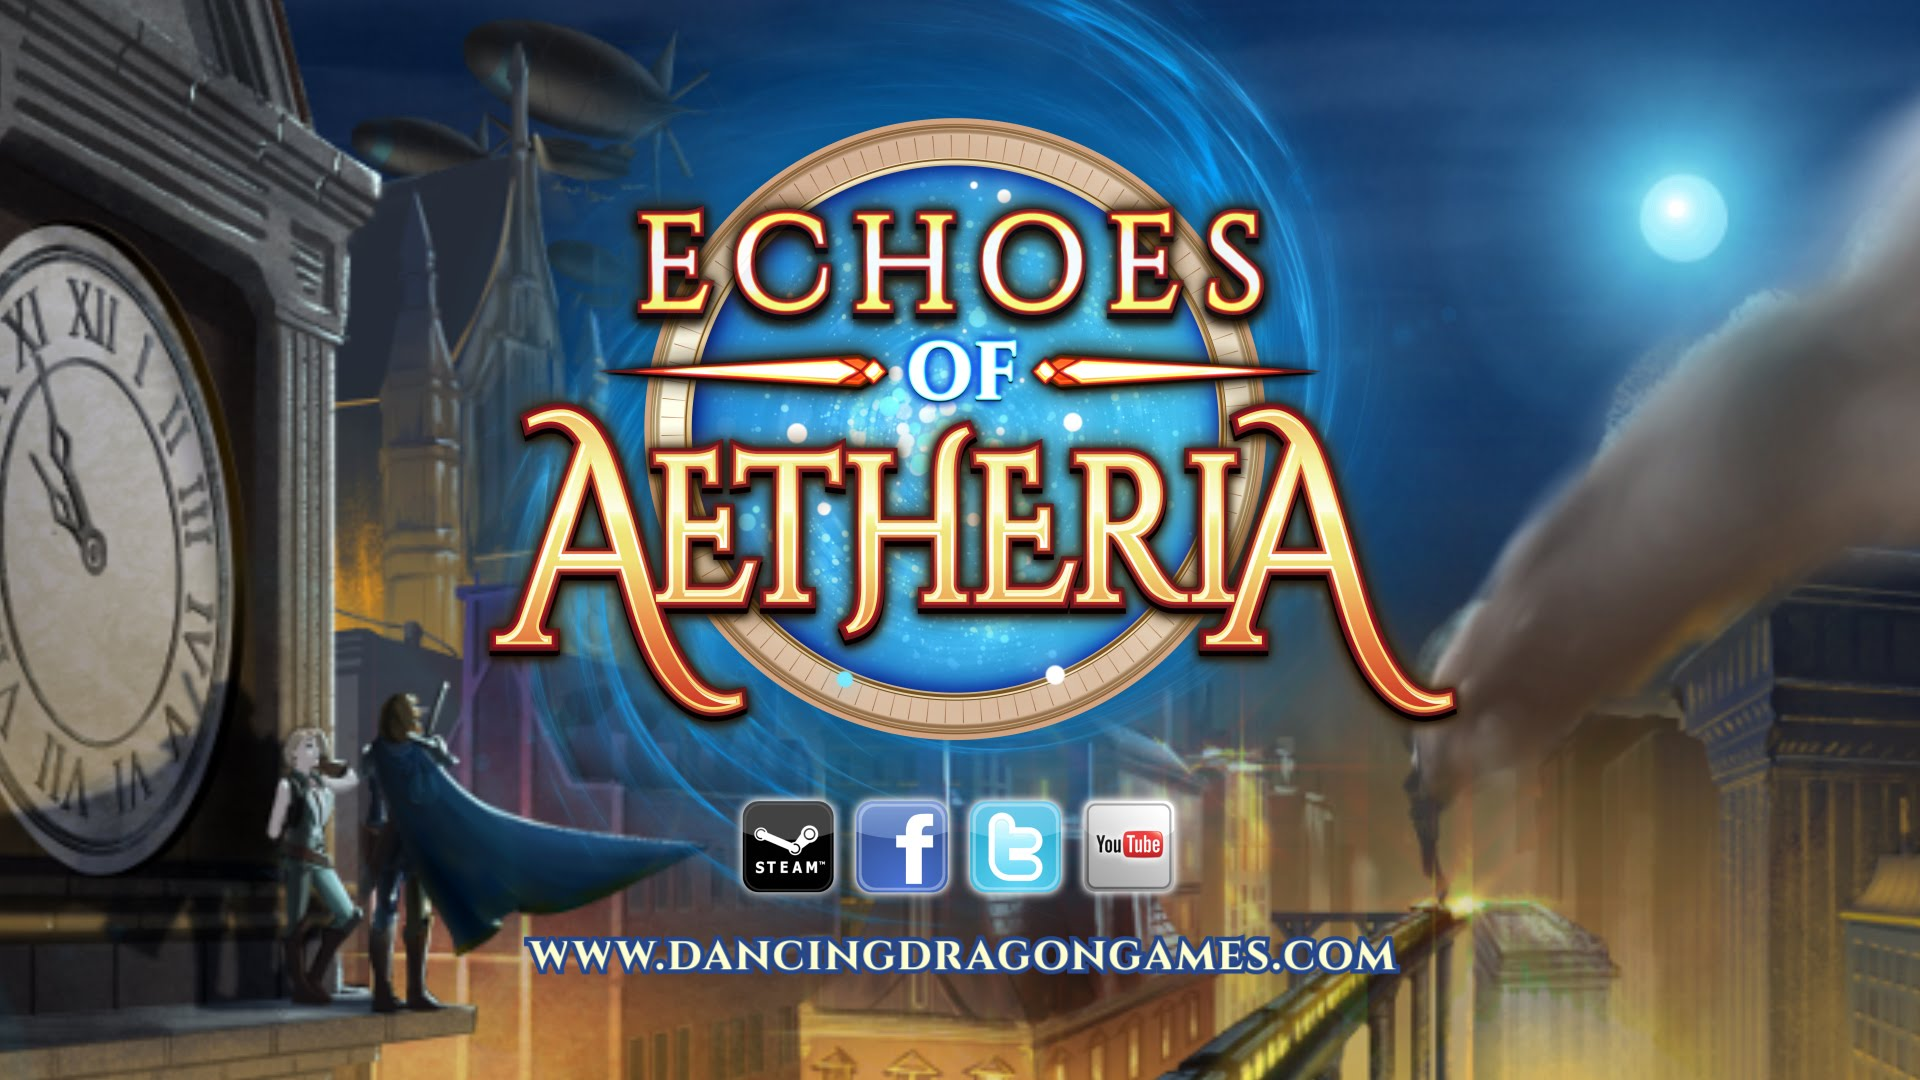 Echoes of Aetheria Review